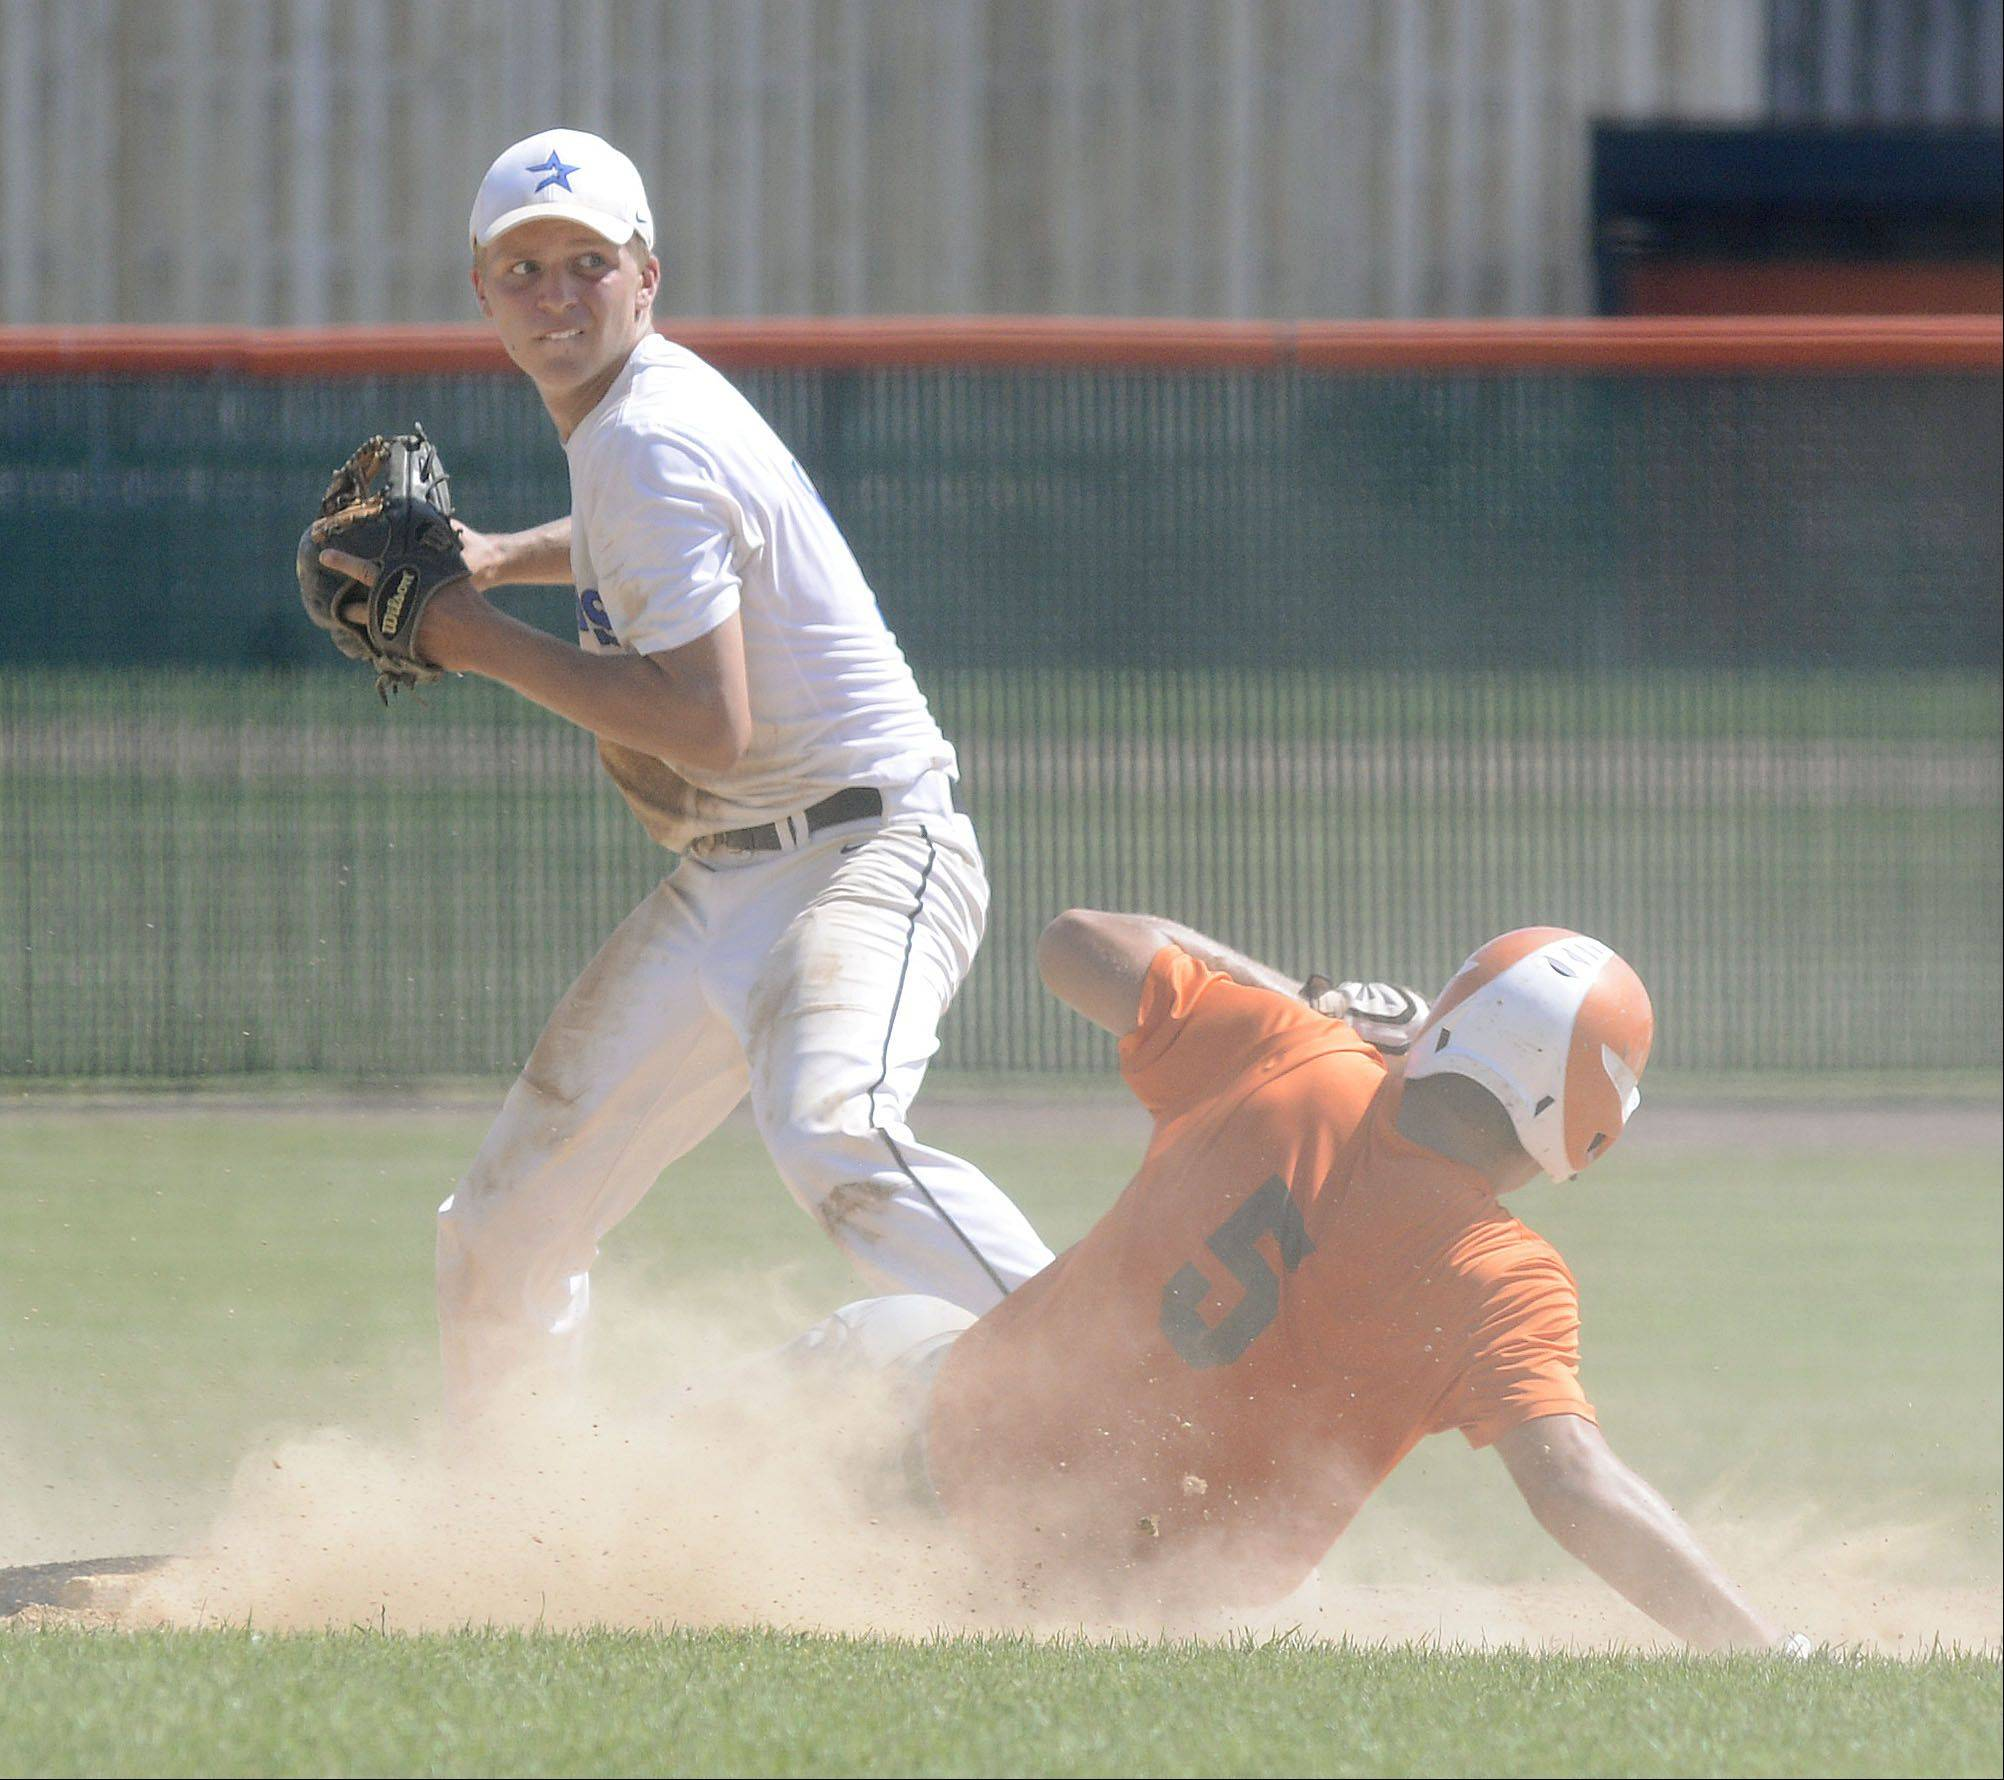 St. Charles East's Erik Anderson is out after an attempt to steal second, and St. Charles North's Luke Johansmeier whips the ball to first base for a double play in the fourth inning of the St. Charles East summer tournament semifinals on Wednesday, July 17.